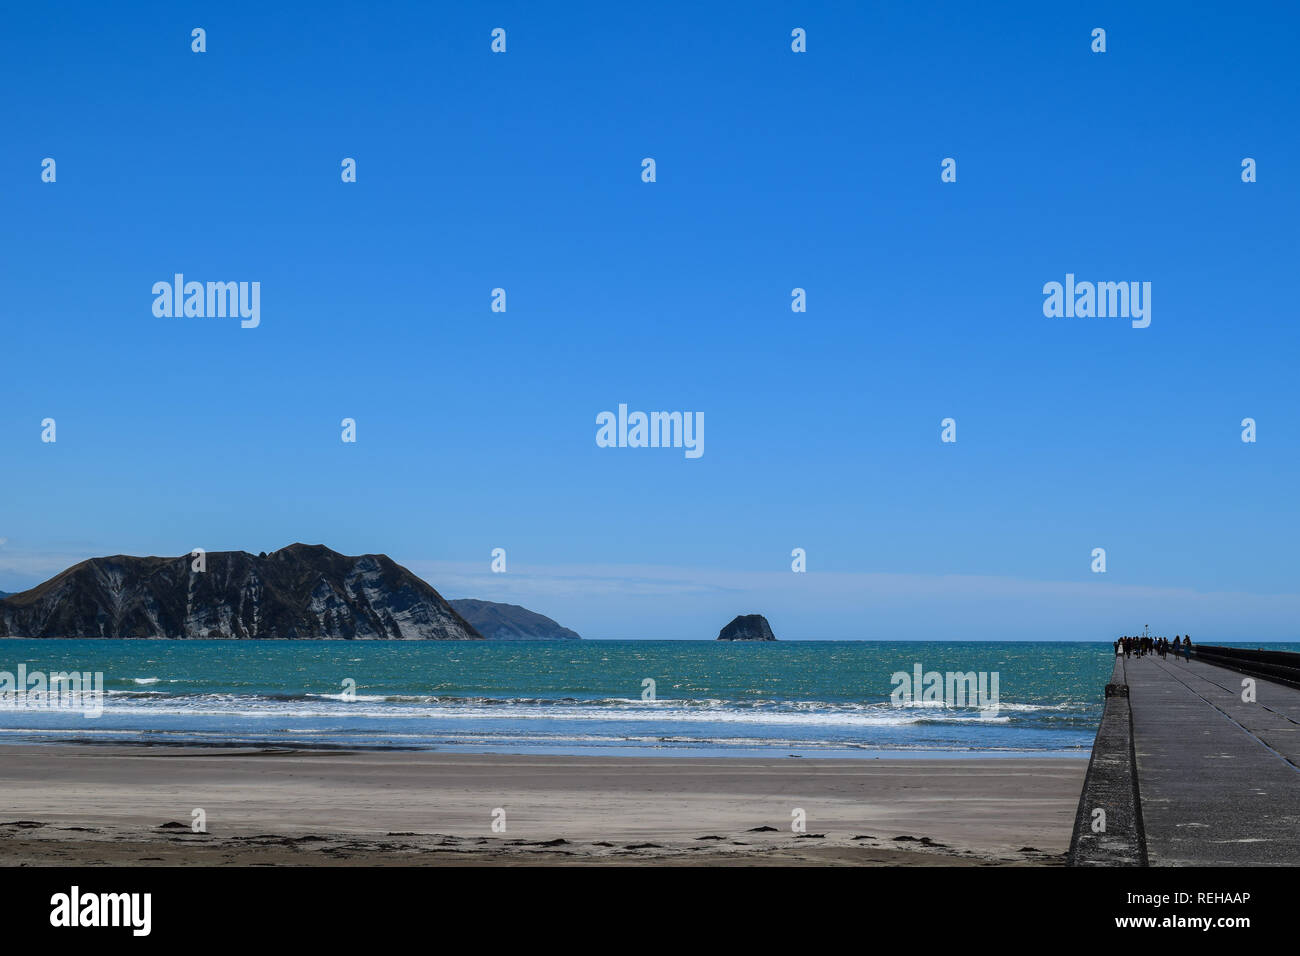 People walk the length of the wharf with the Summer sun above and the calm blue water below in Tolaga Bay, New Zealand - Stock Image